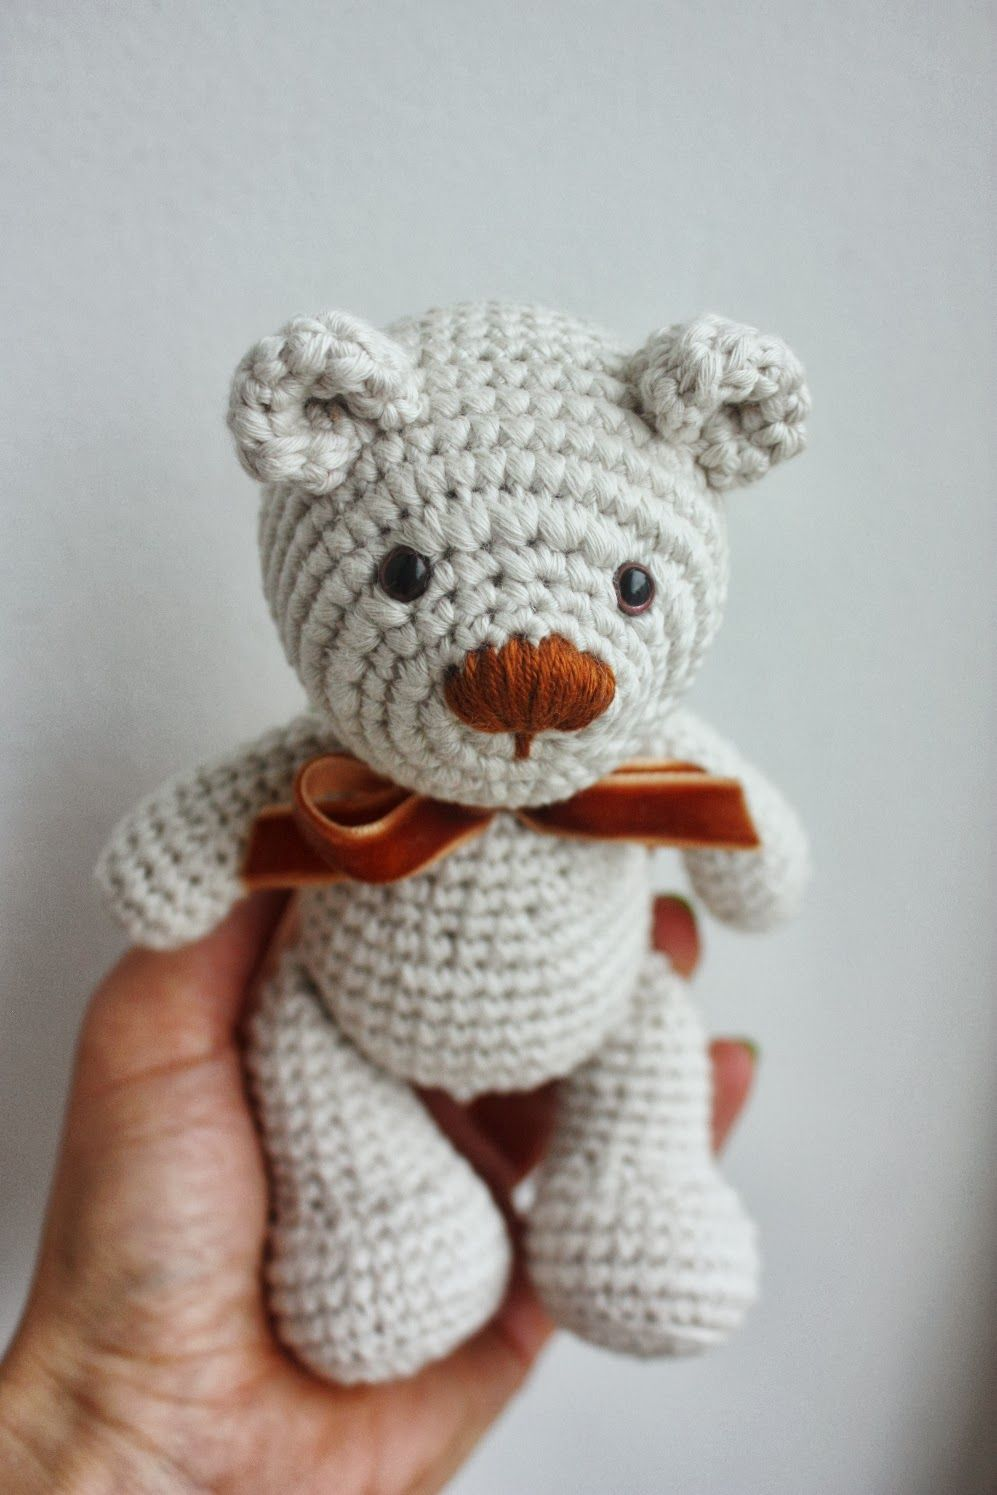 Making crochet teddy bears making tiny teddy bears first photo of making crochet teddy bears making tiny teddy bears first photo of this project there bankloansurffo Choice Image